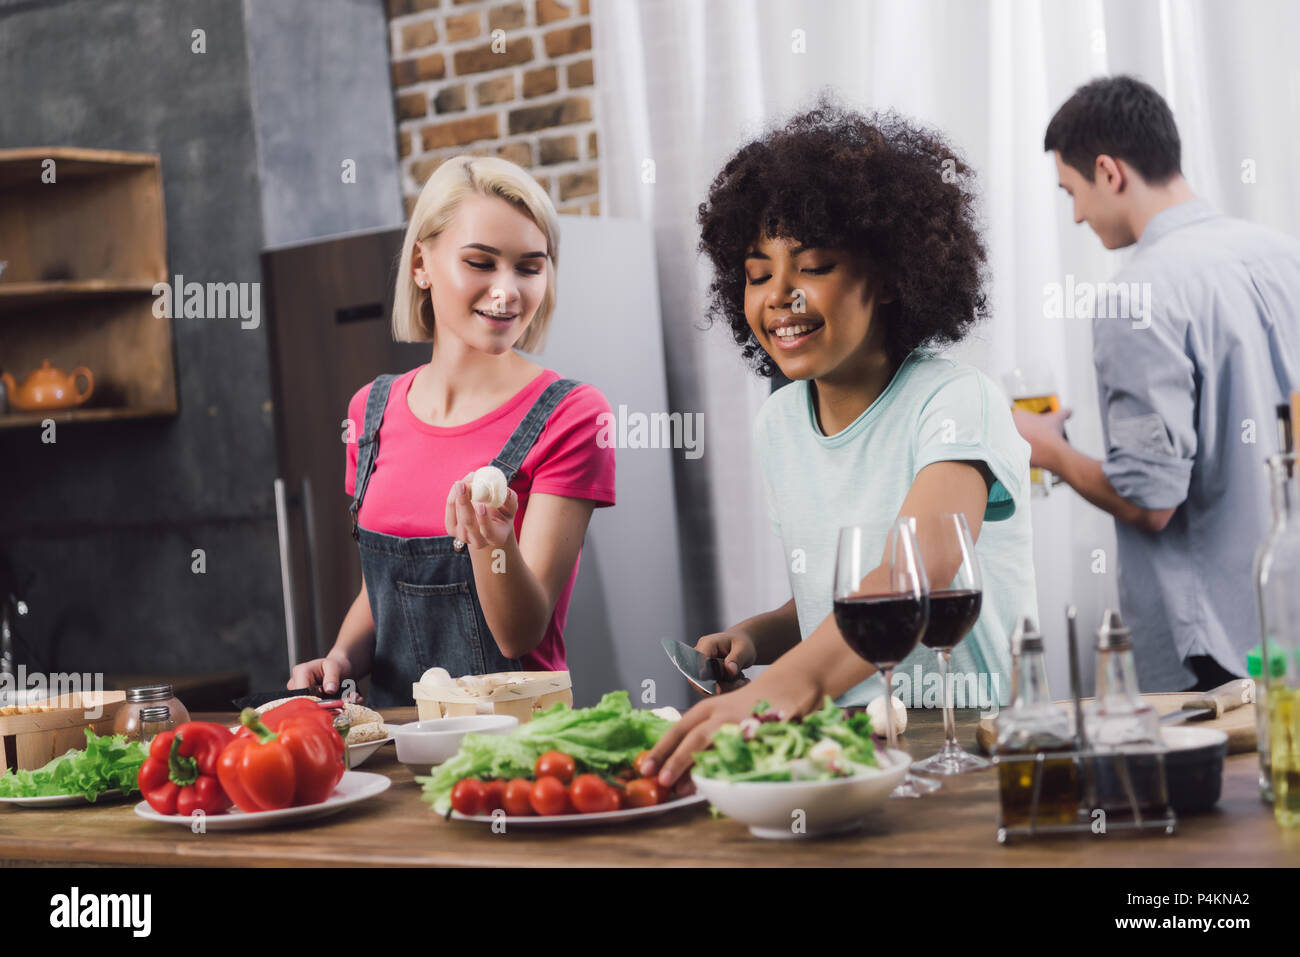 smiling multiethnic girls cooking in kitchen - Stock Image